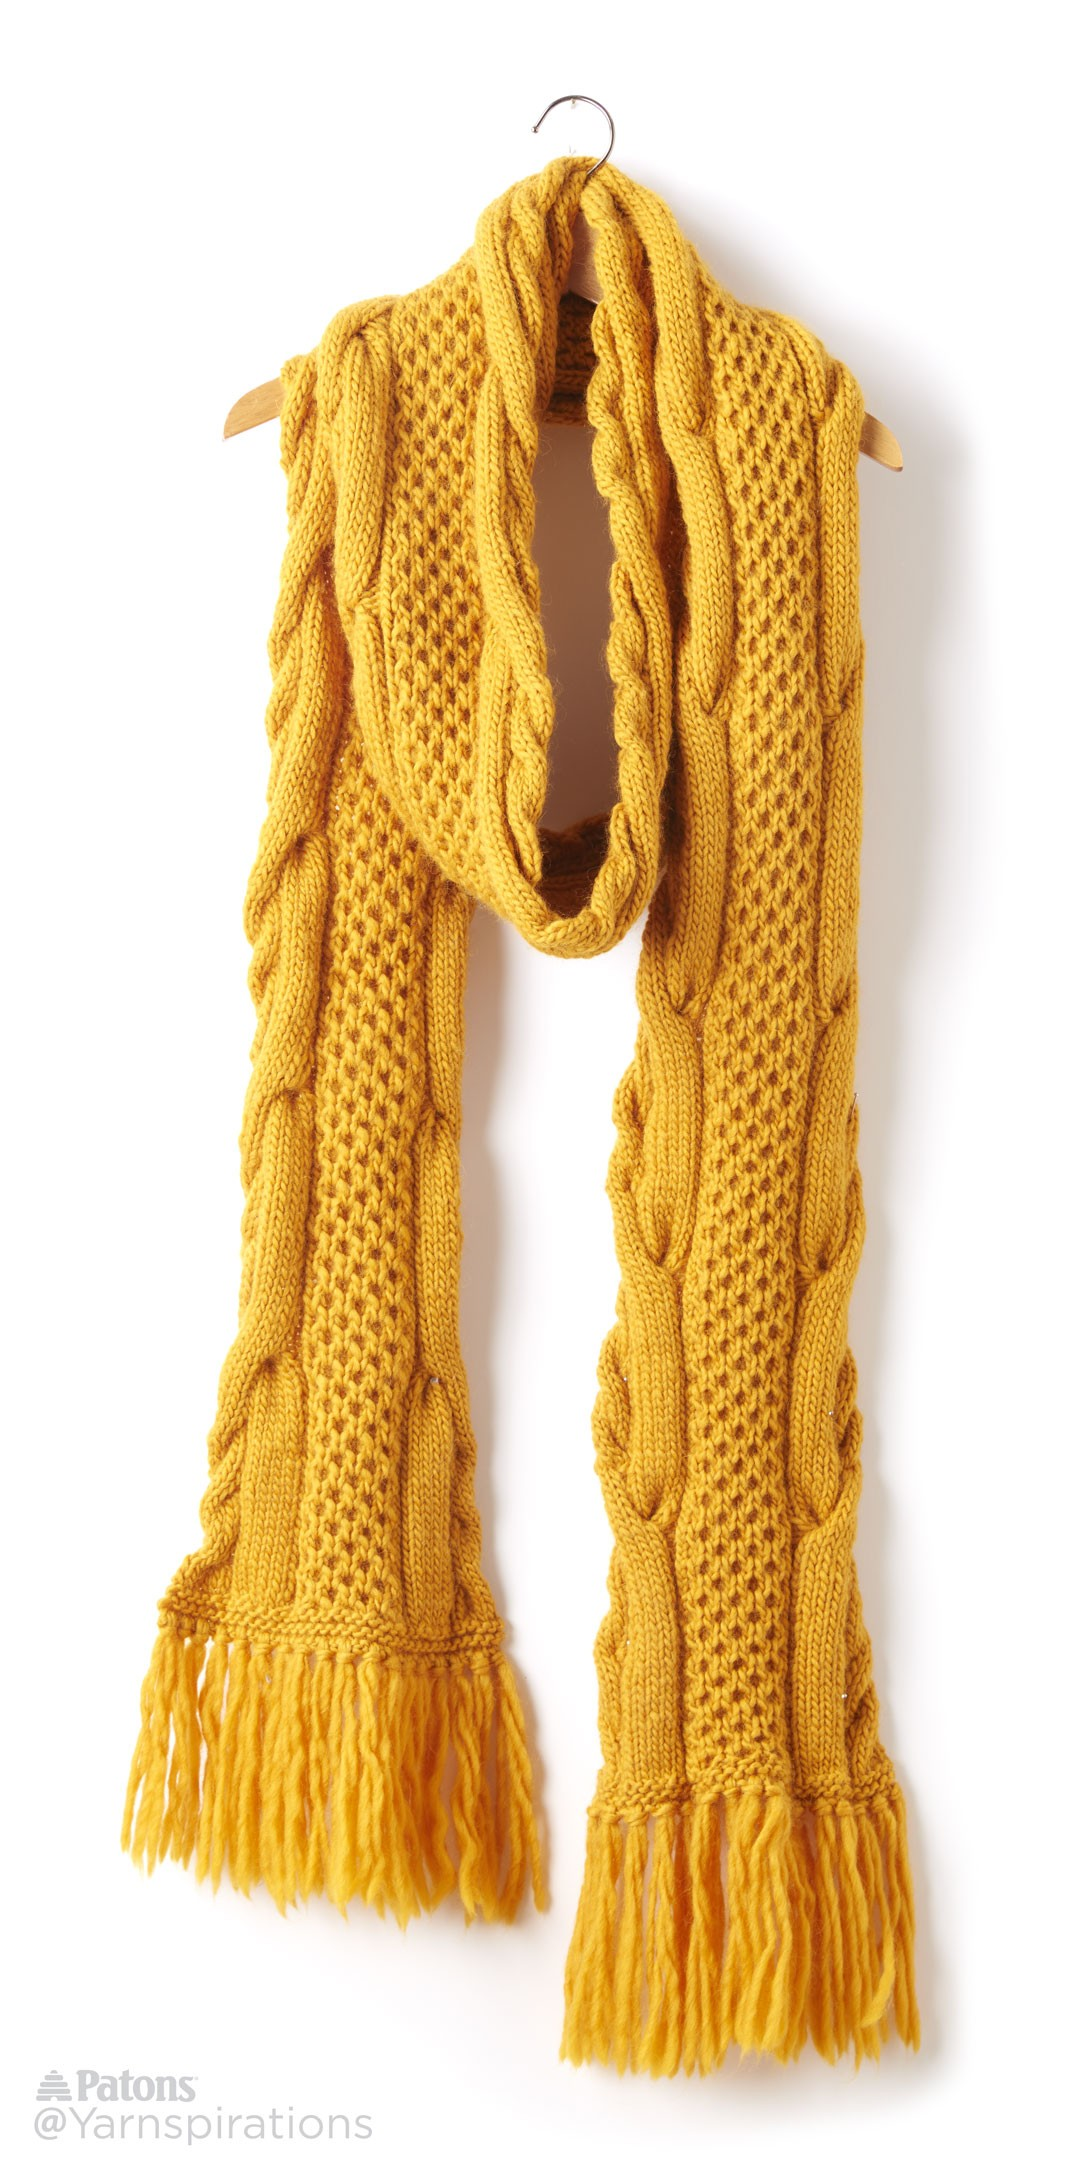 Free Knitting Pattern For Twisted Scarf : Patons Honey Comb Twist Knit Super Scarf, Knit Pattern Yarnspirations